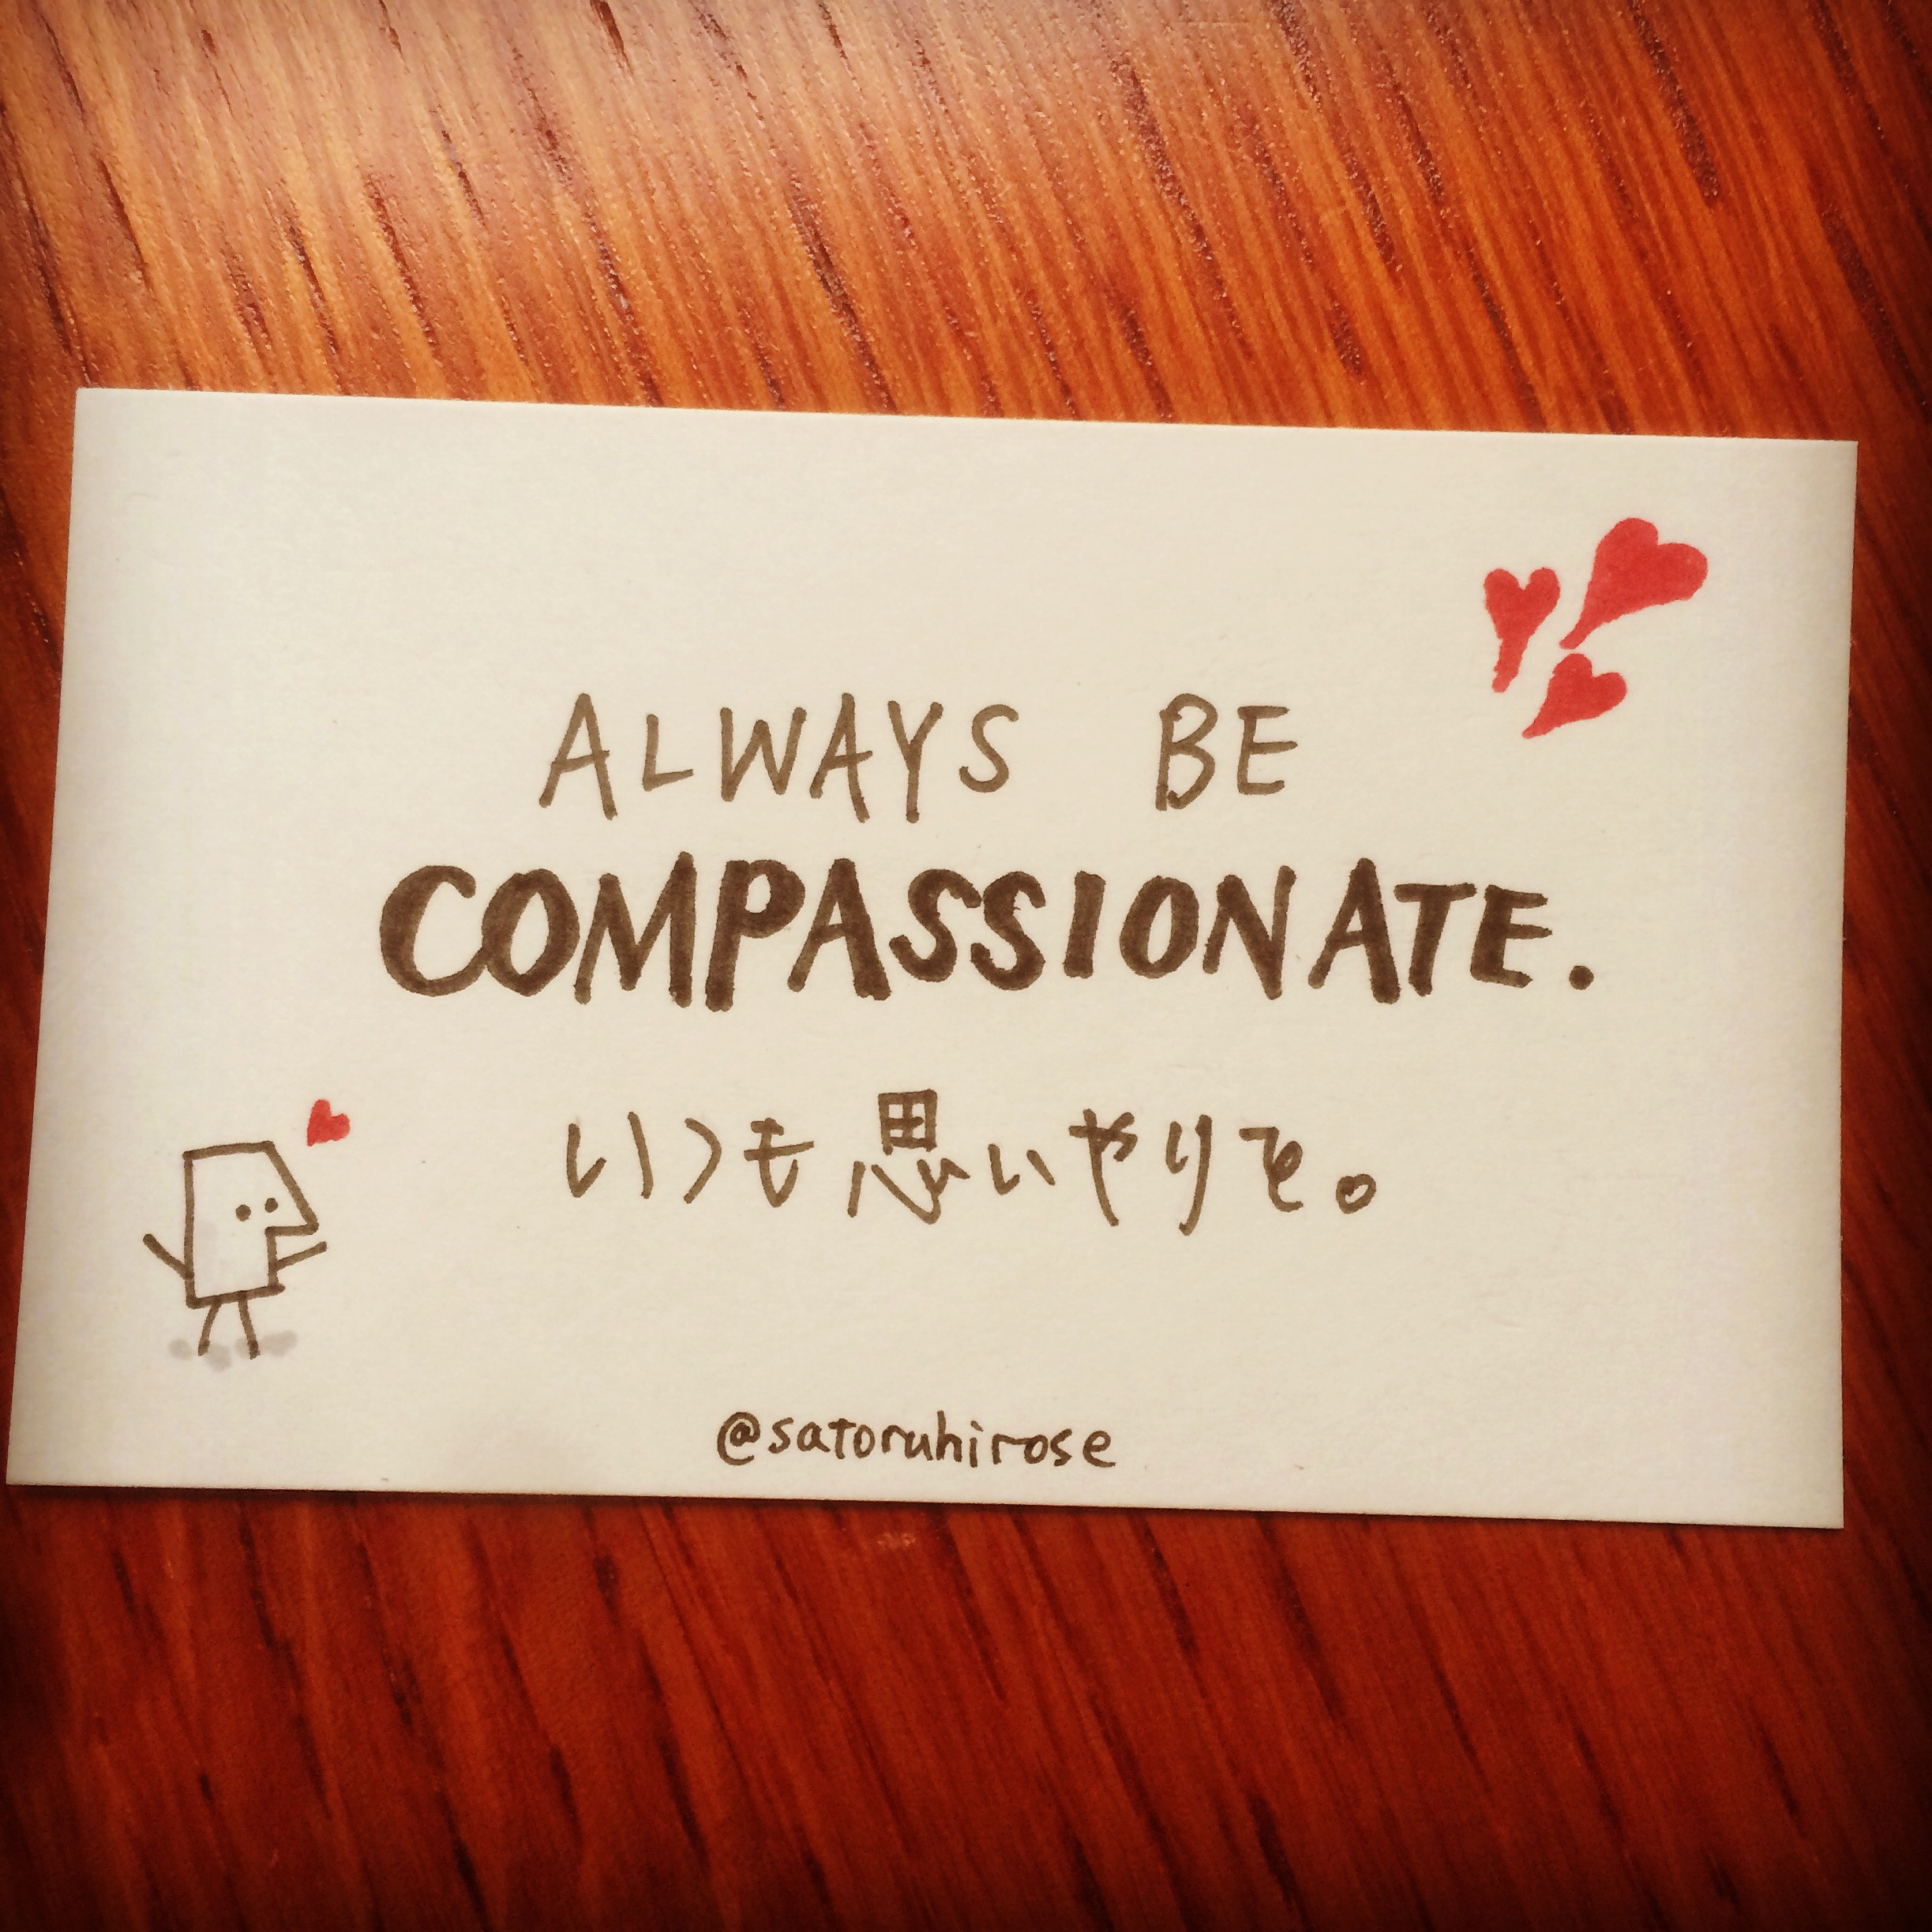 Always be compassionate.